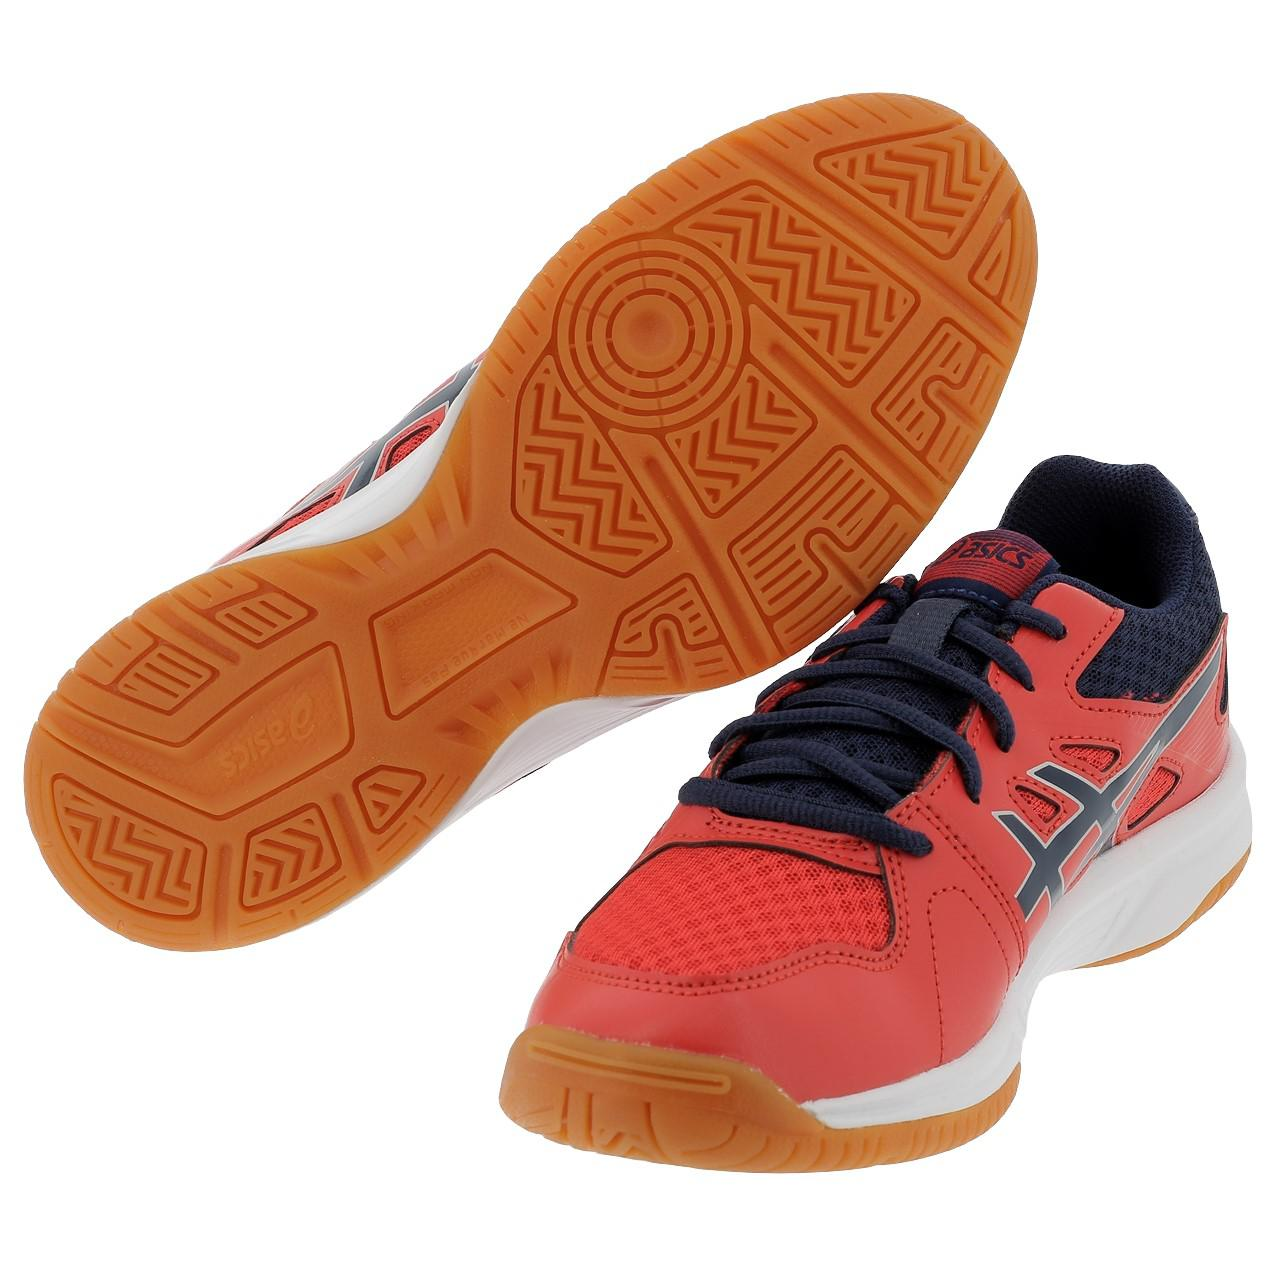 Shoes-Volleyball-Basketball-Asics-Upcourt-3-Rge-Indoor-Jr-Red-11133-New thumbnail 4